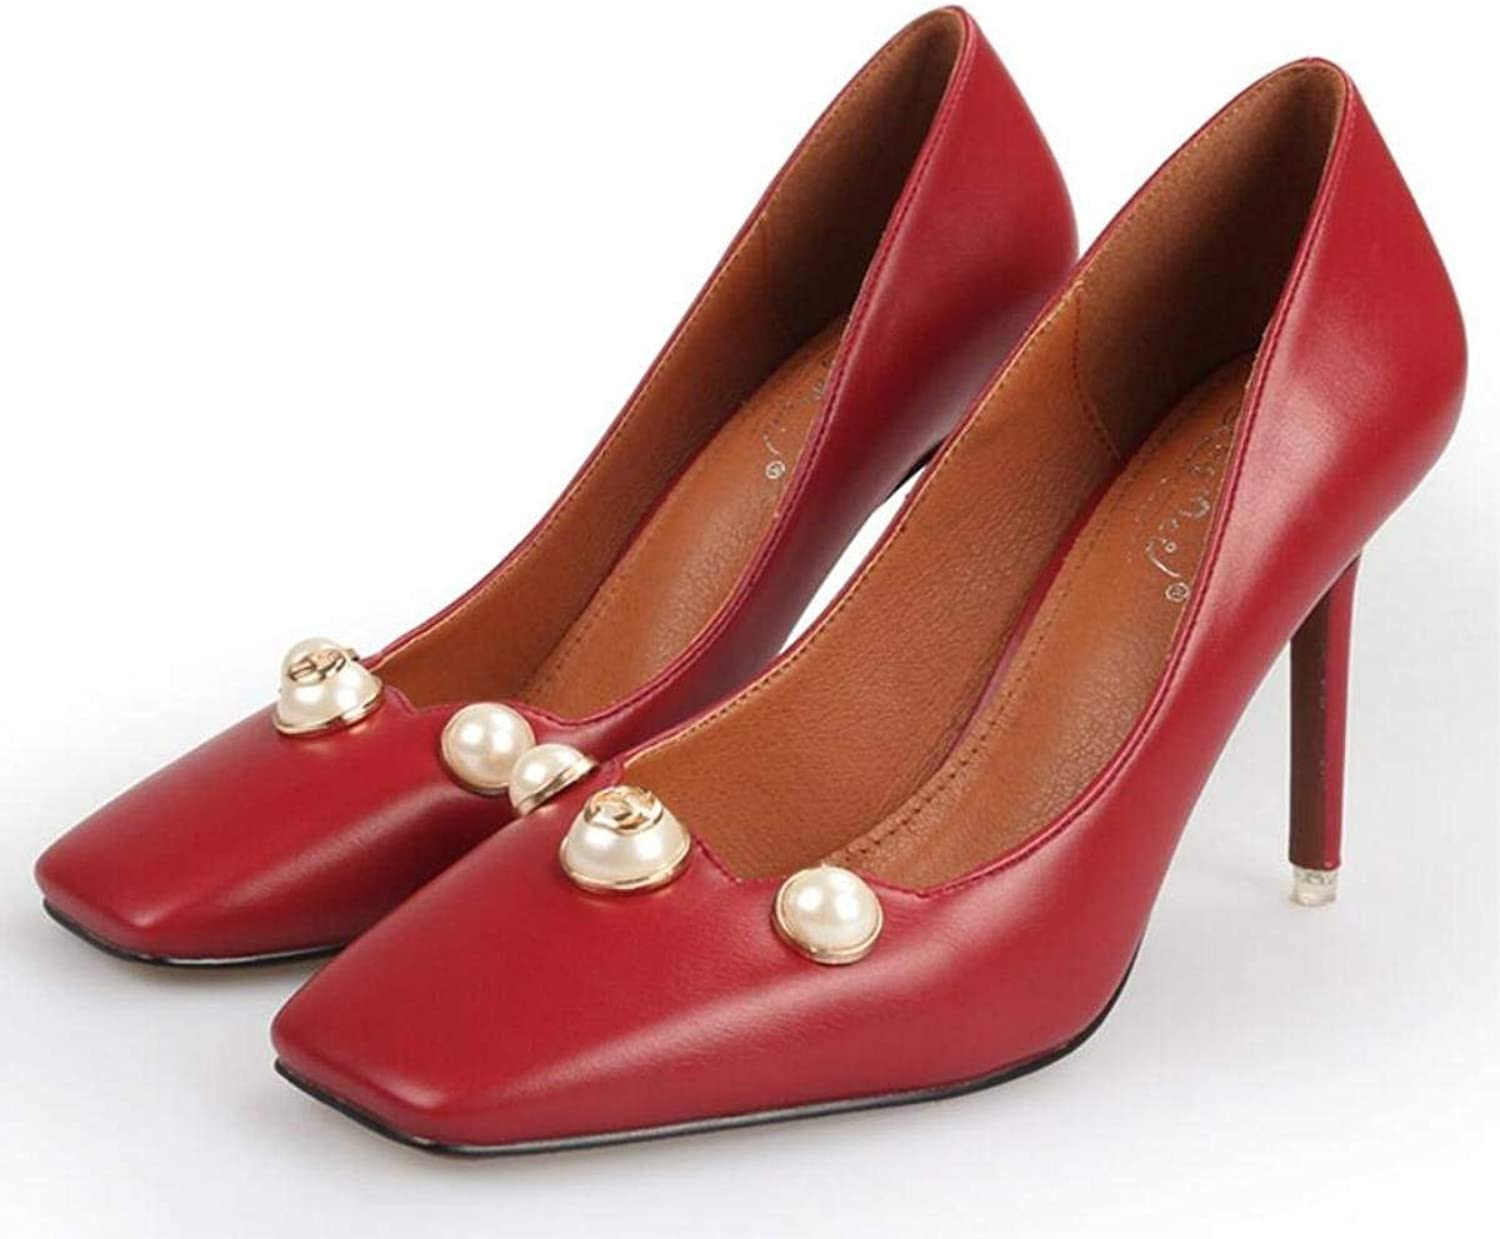 Lady shoes Heeled Square Head Women's shoes Shallow Mouth Leather Casual Pearl shoes Black Red Brown Beige for Women